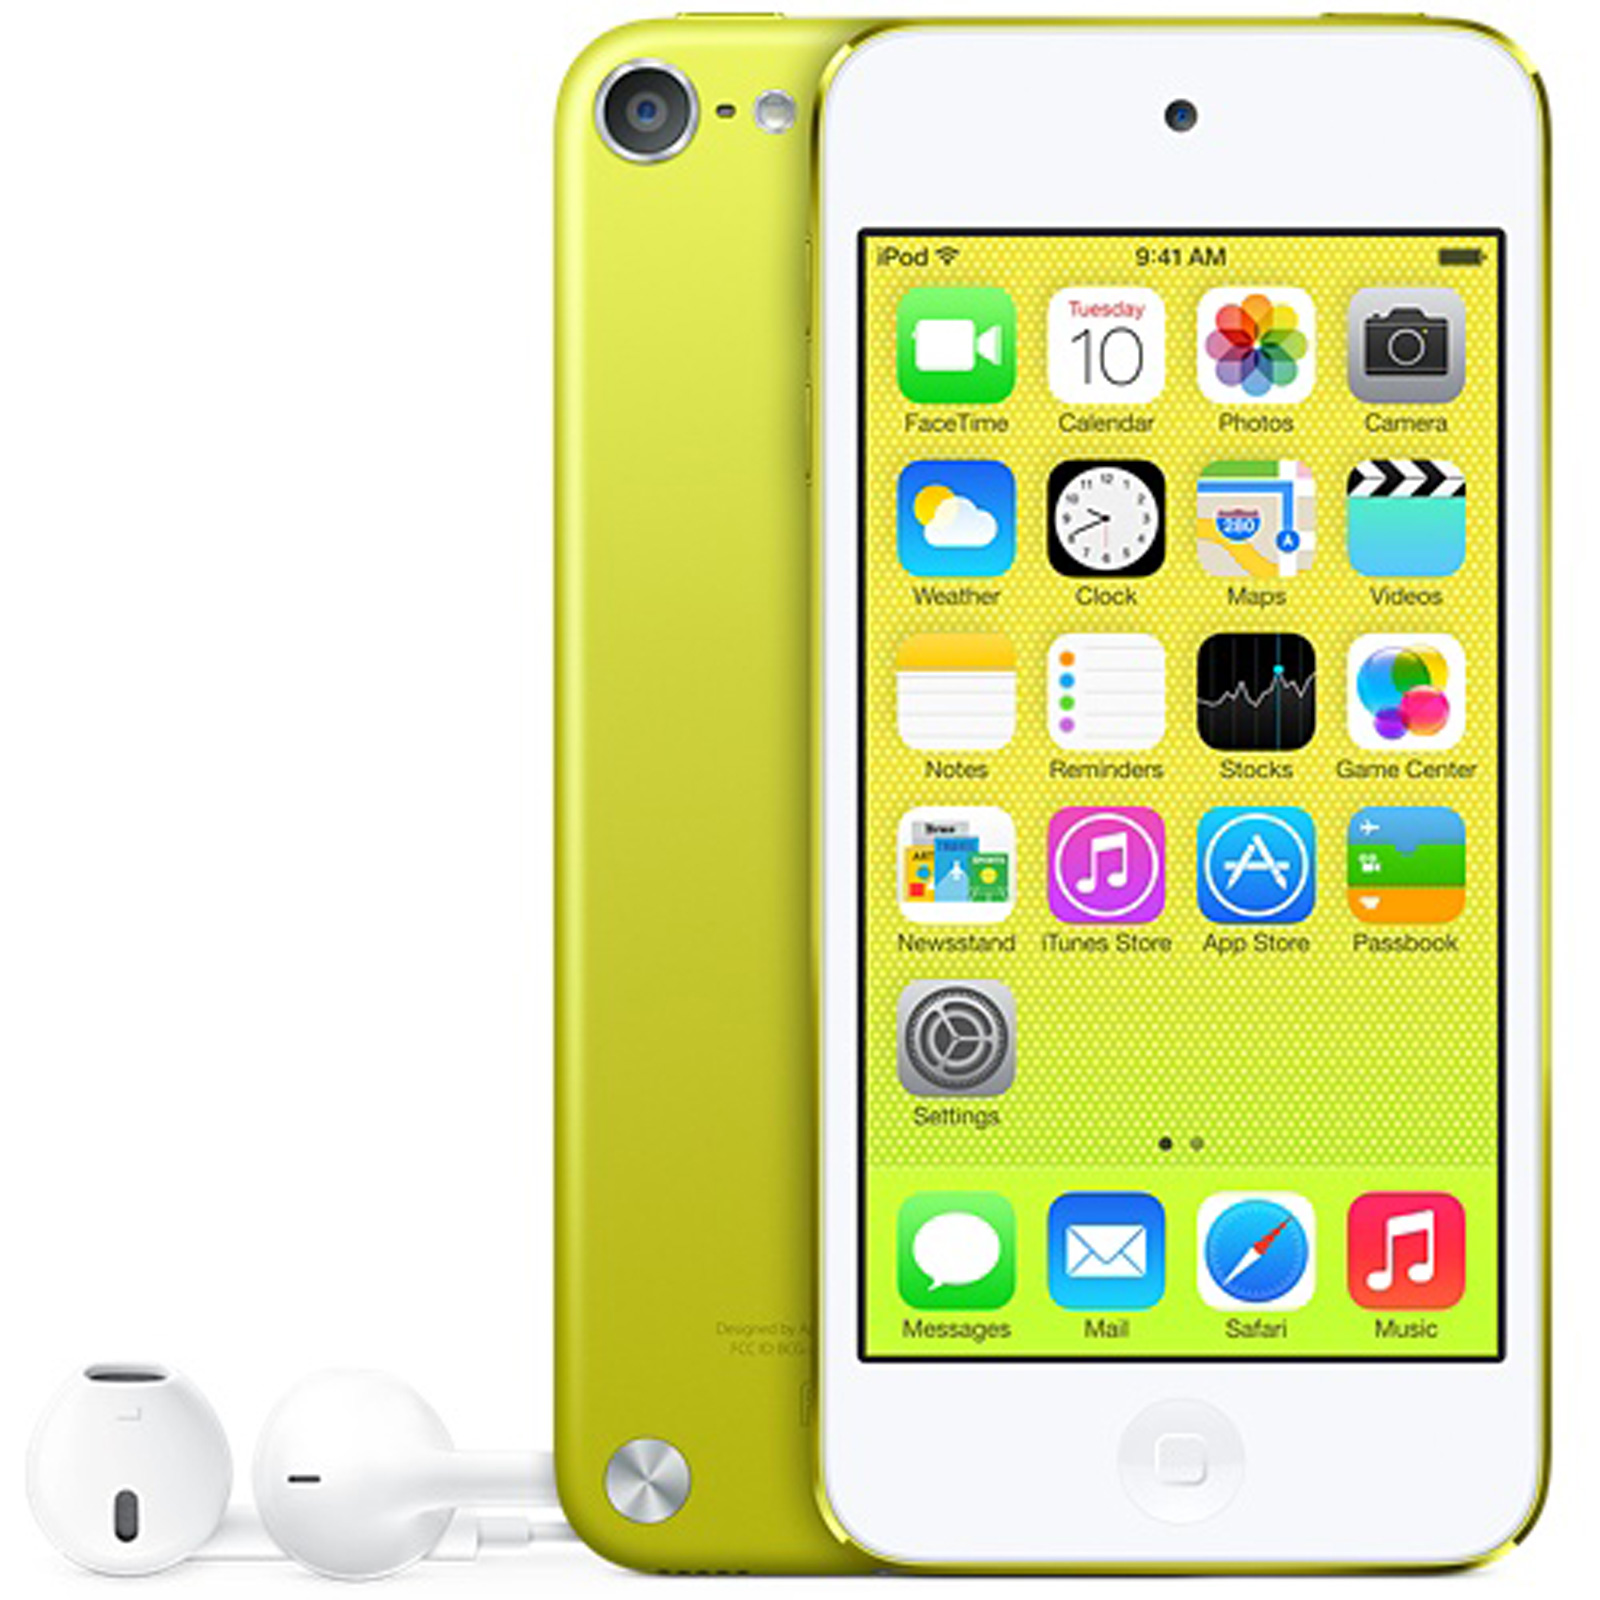 apple ipod touch 16 go jaune lecteur mp3 ipod apple sur. Black Bedroom Furniture Sets. Home Design Ideas